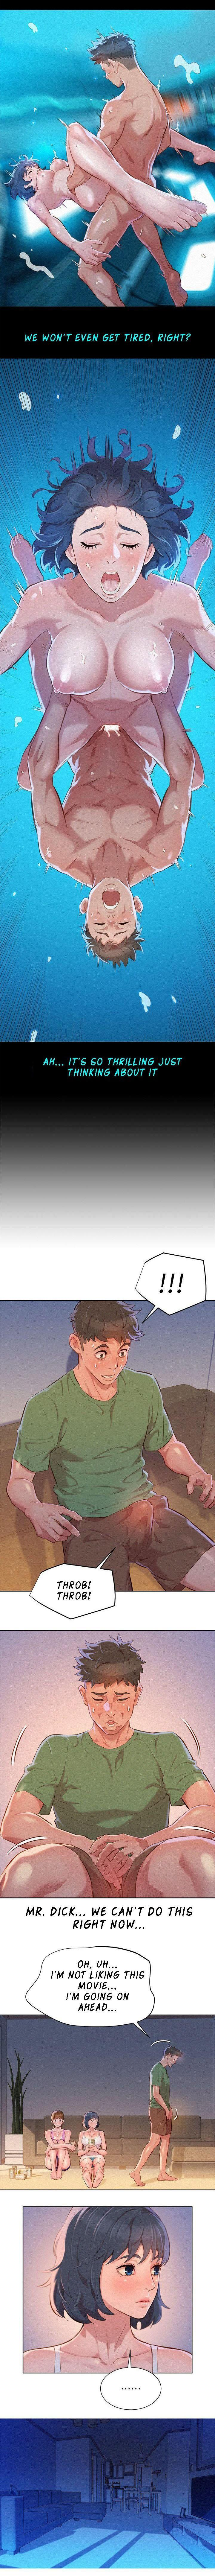 What do you Take me For? Ch.40/? 376